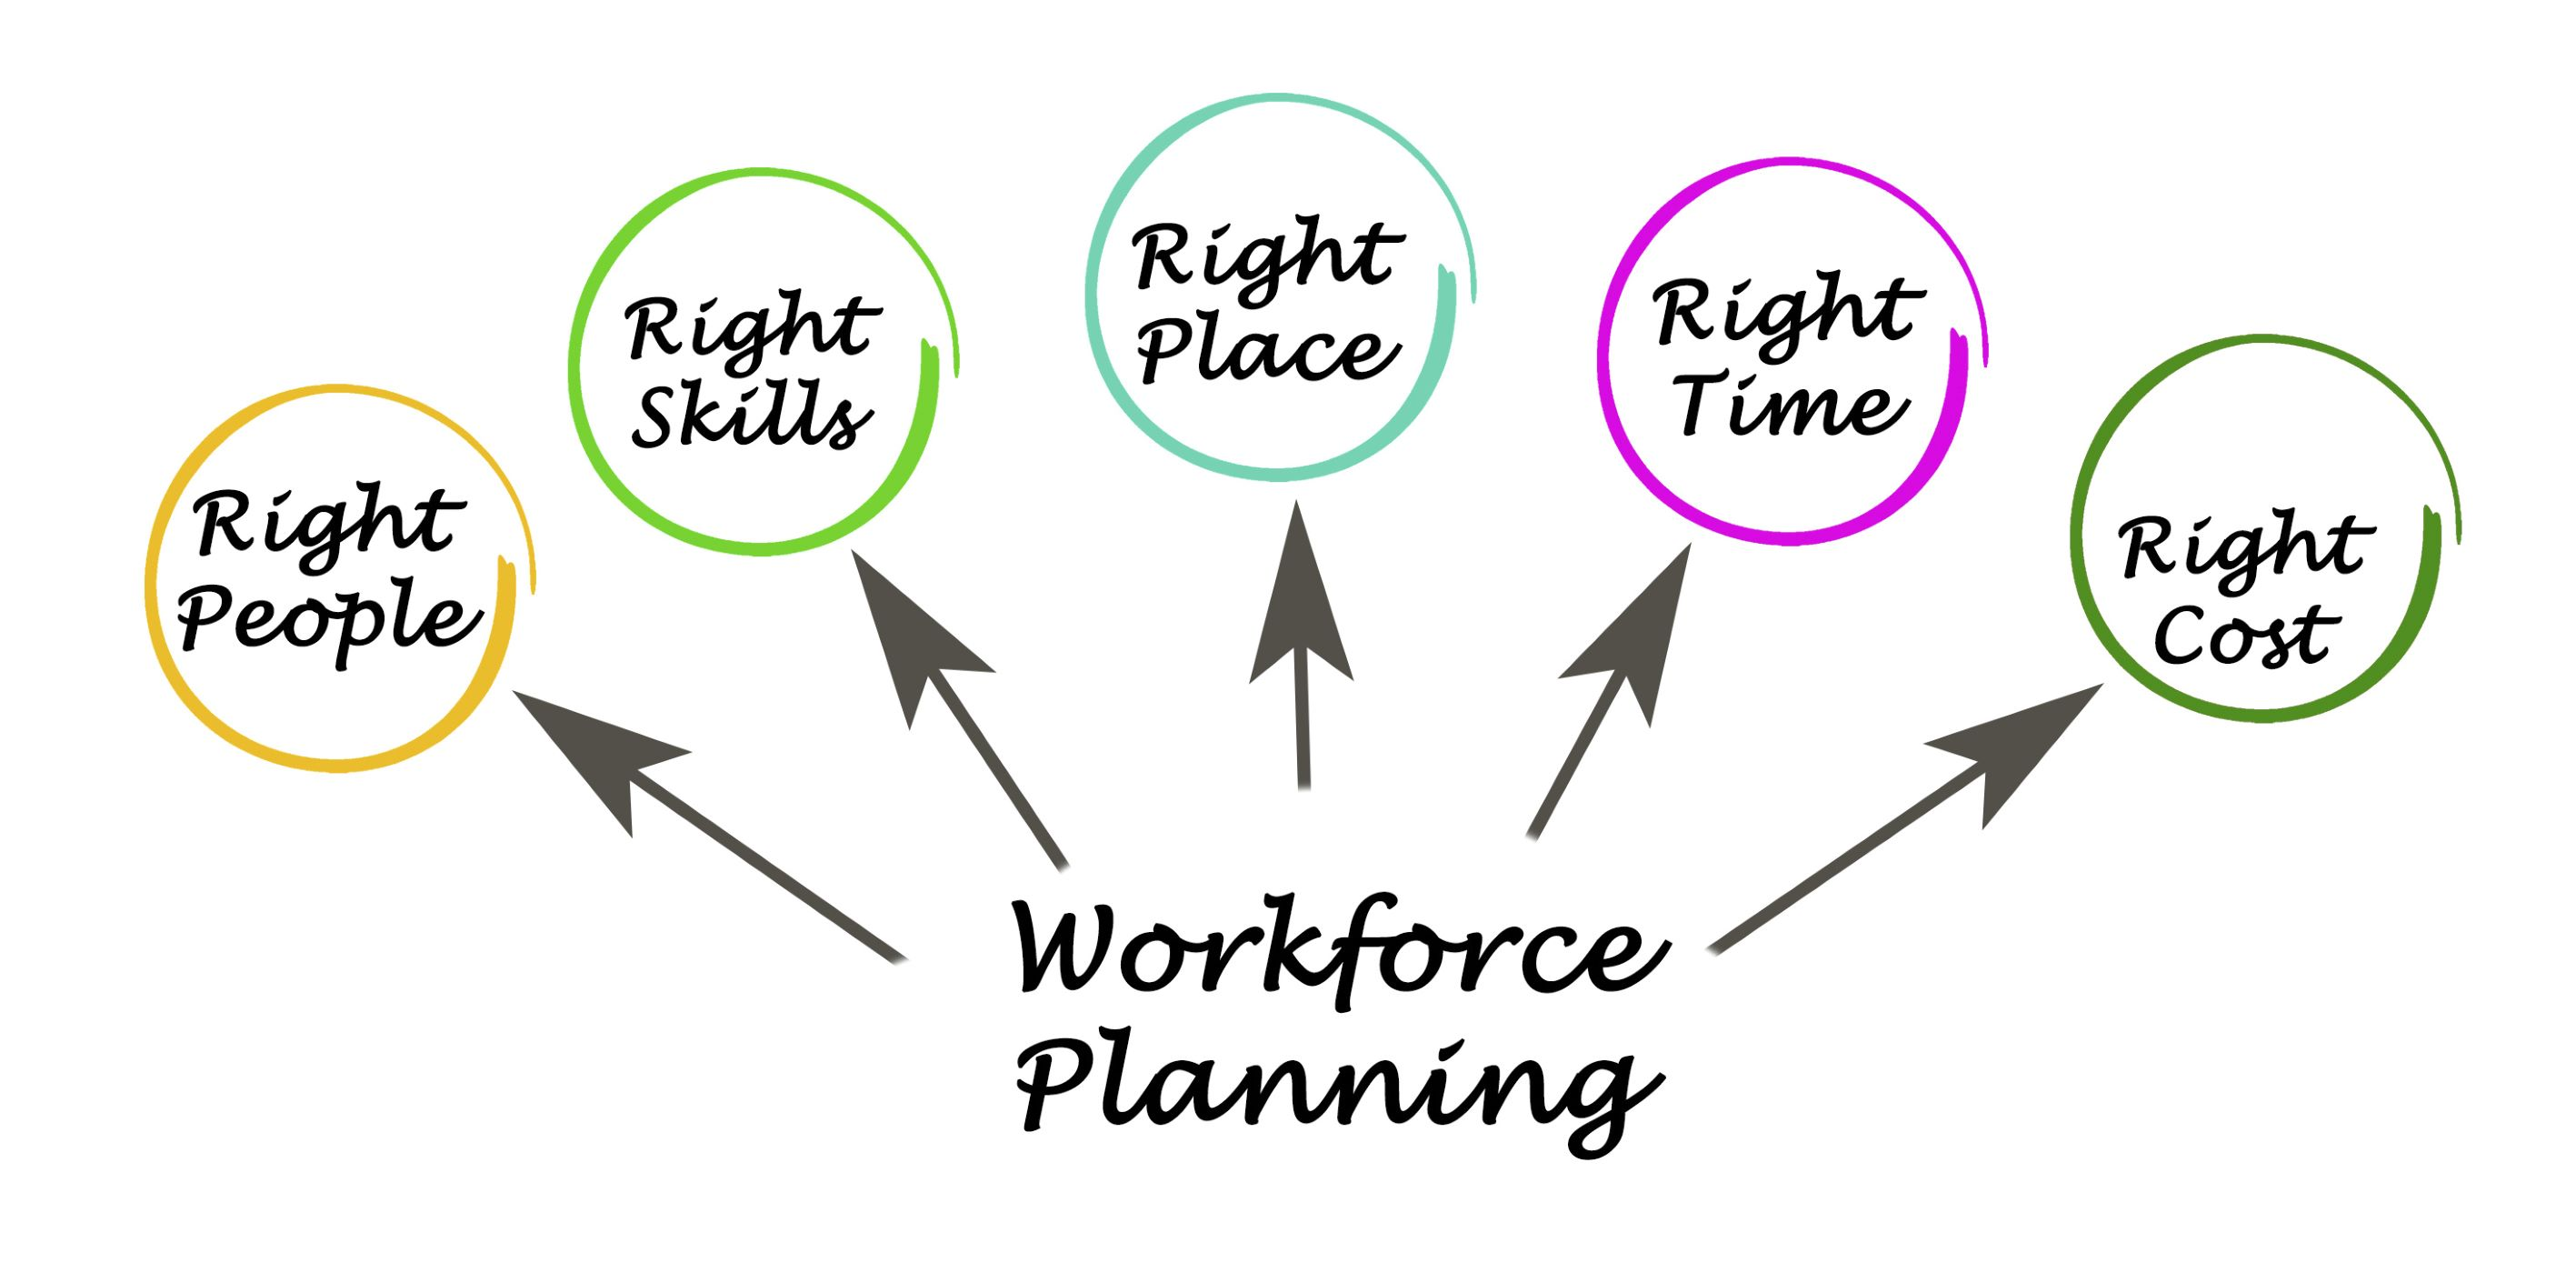 Contact Centre Workforce Planning